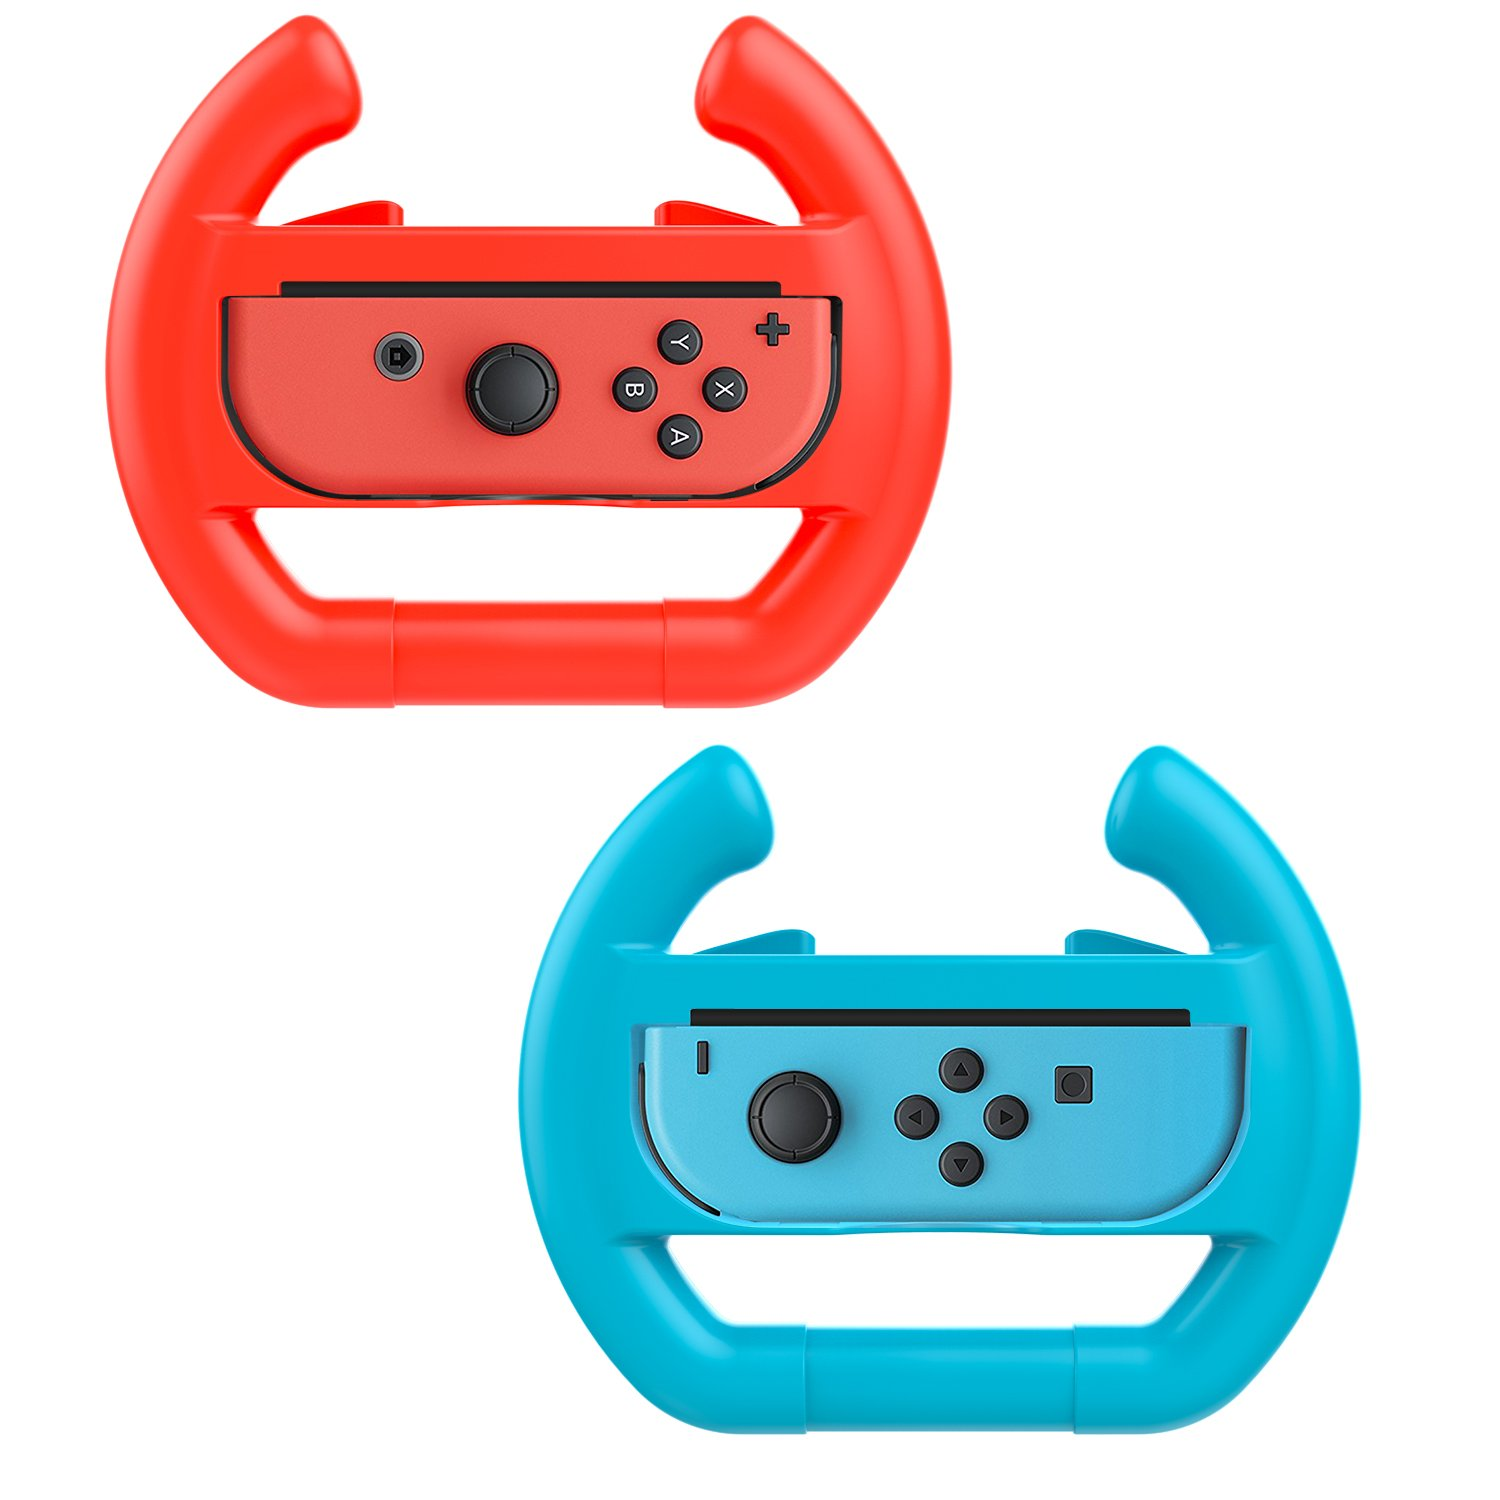 MoKo Nintendo Switch Steering Wheel, [2 Pack] Racing Game Manipulate Grip for Nintendo Switch Joy-con Controller (Blue & Red)